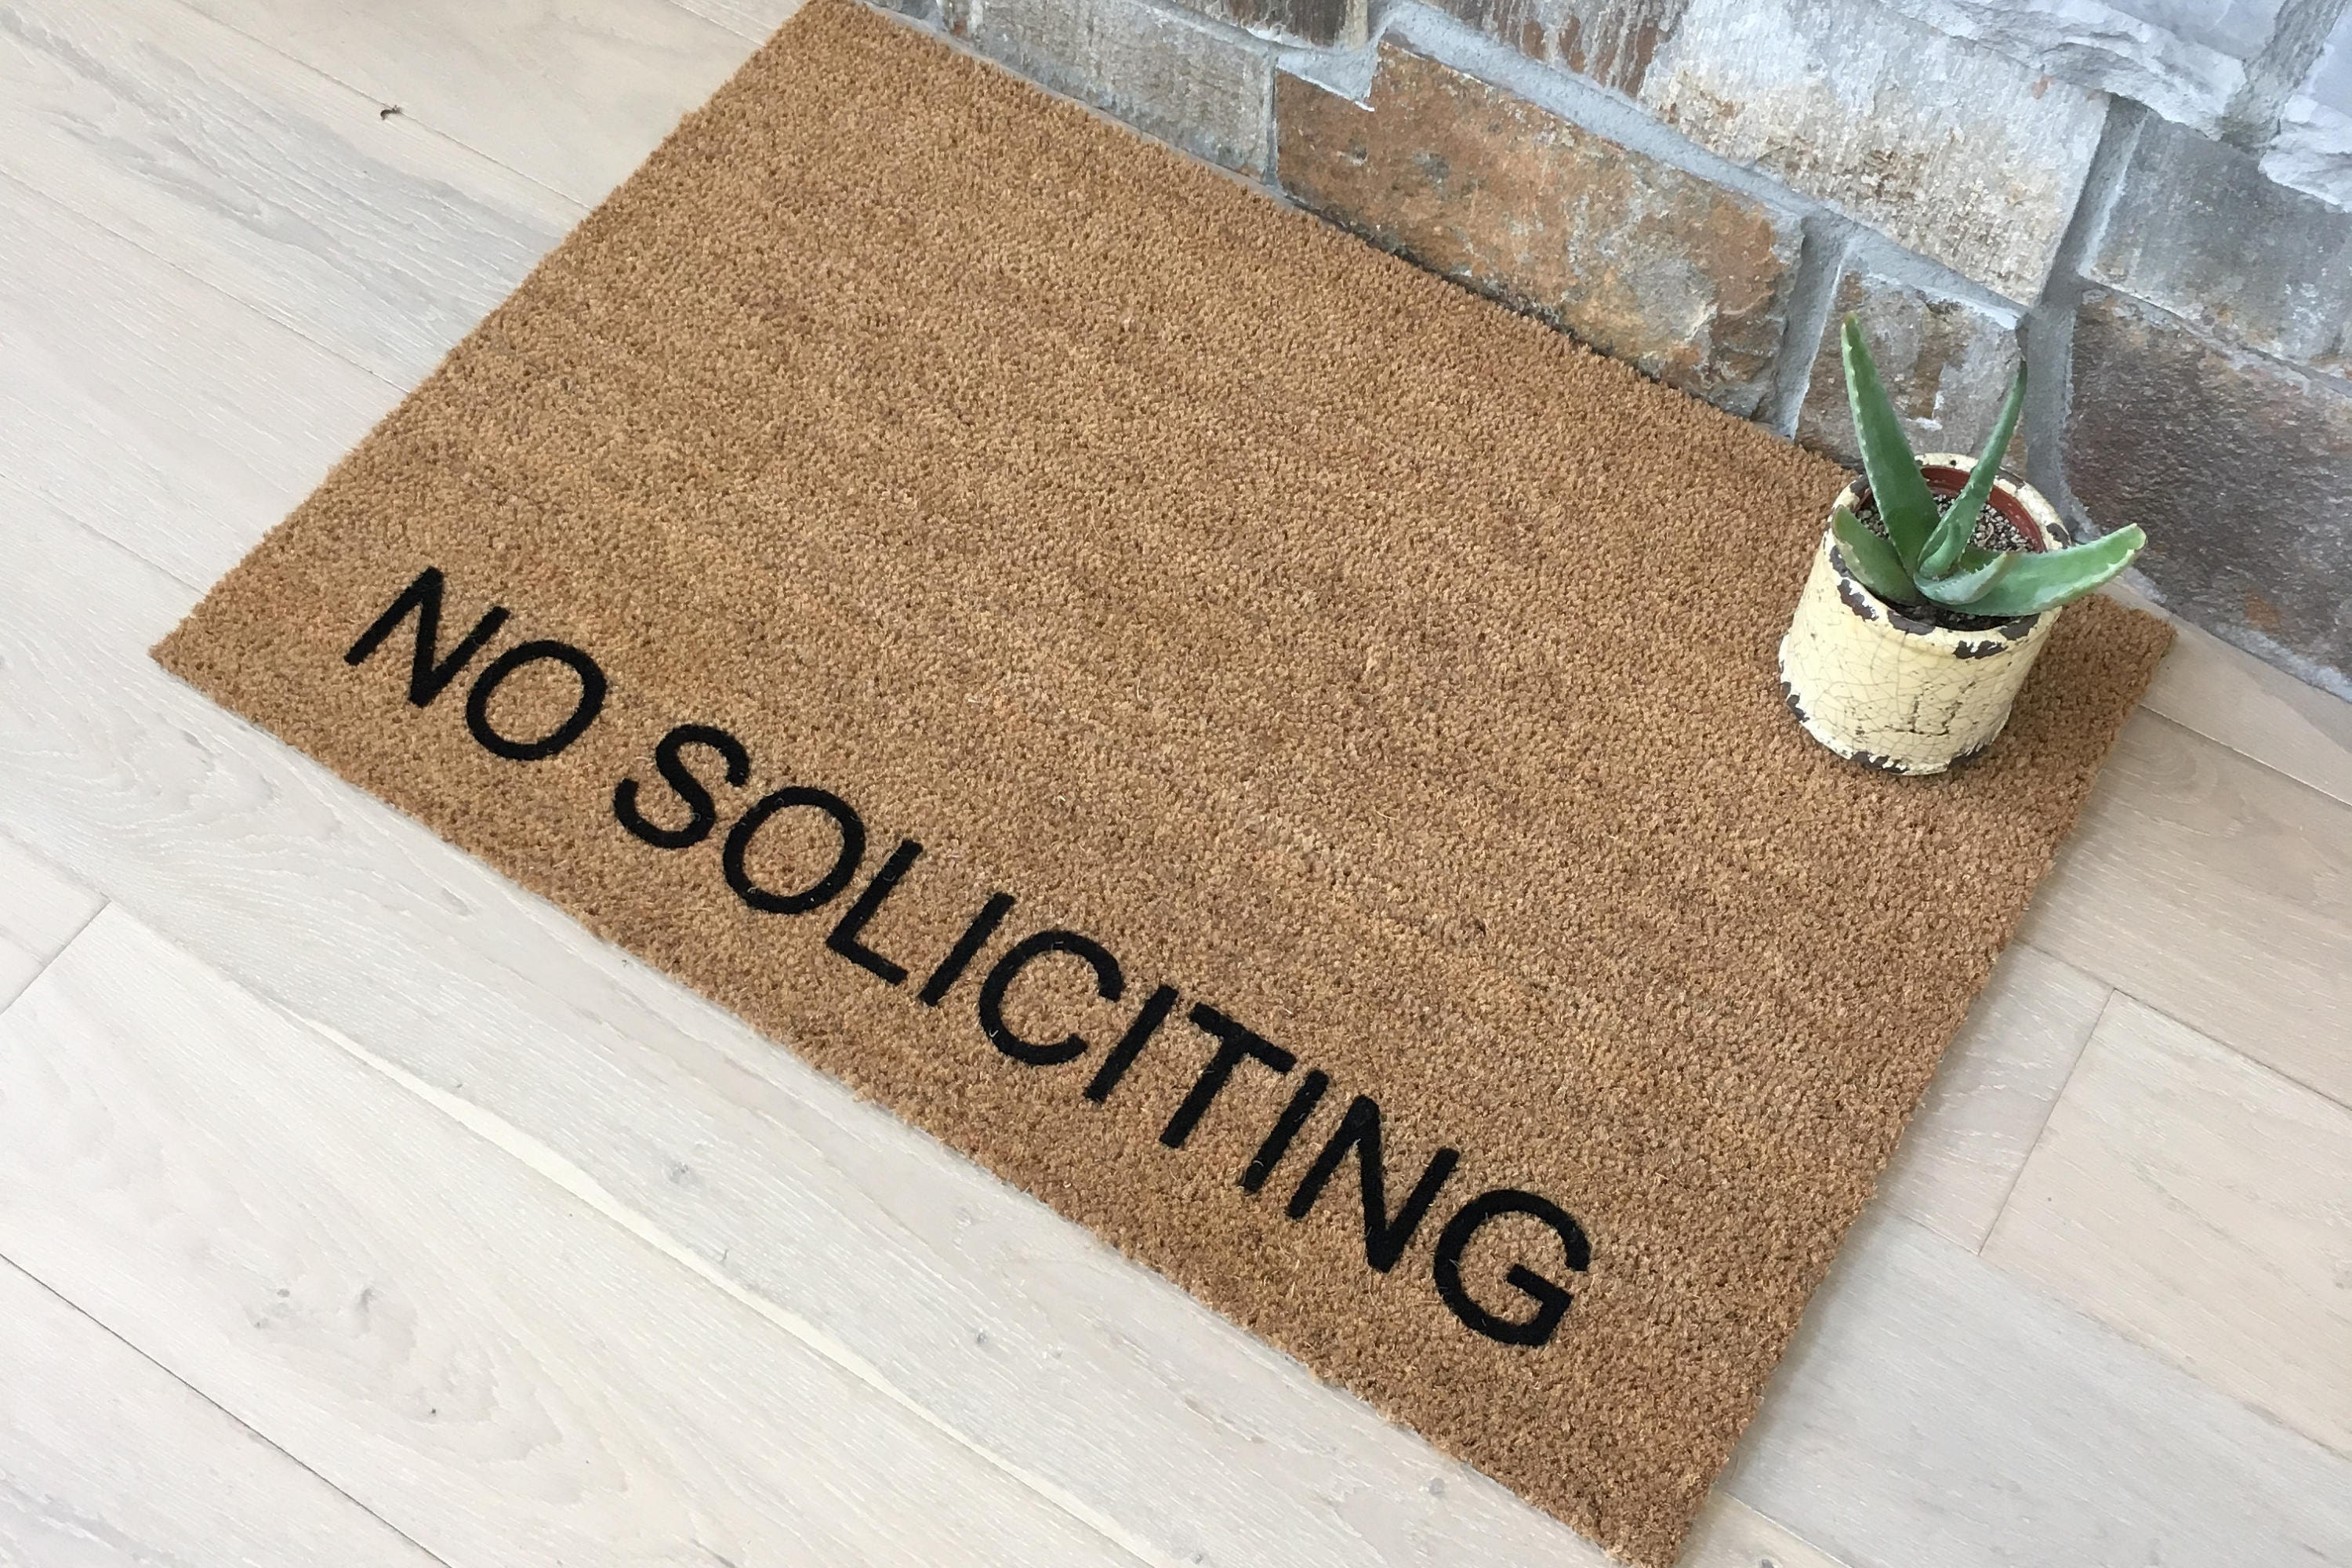 Attractive Doormats / Welcome Mat / Custom Doormat / No Soliciting Doormat / Business  Doormat / Unique Door Mats / Entry Doormat / No Soliciting Please